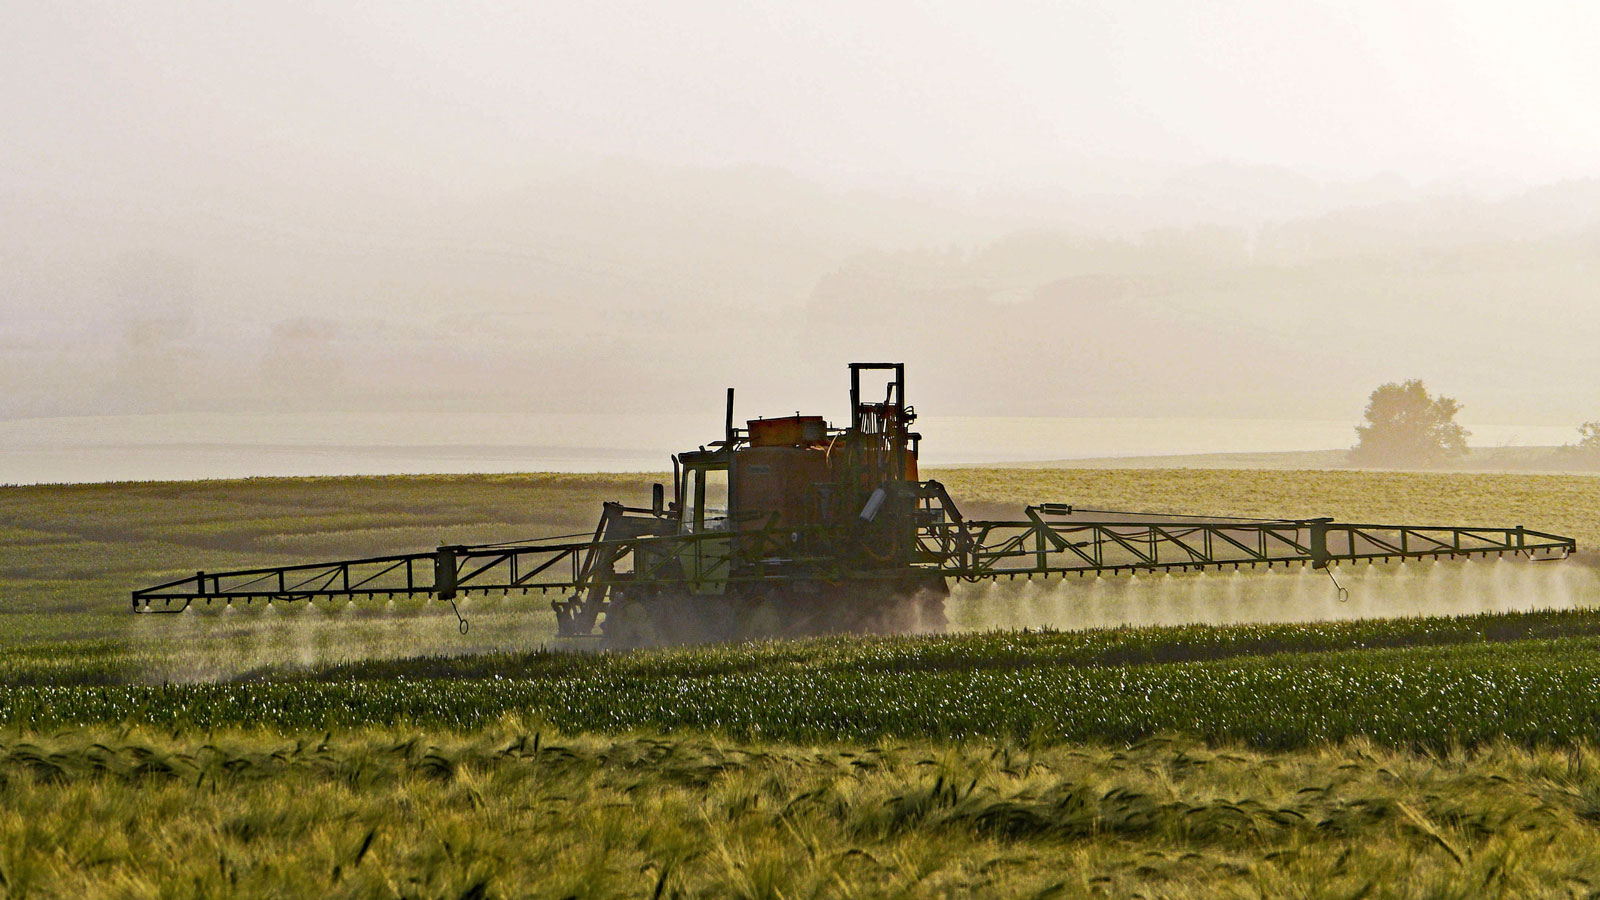 <h4>Risks To Our Health</h4><p>The class of pesticides known as pyrethroids accounts for nearly one-third of all pesticide use worldwide. A recent study found that pyrethroid exposure was linked to a 56% increased risk of premature death.</p><em>Public Domain</em>